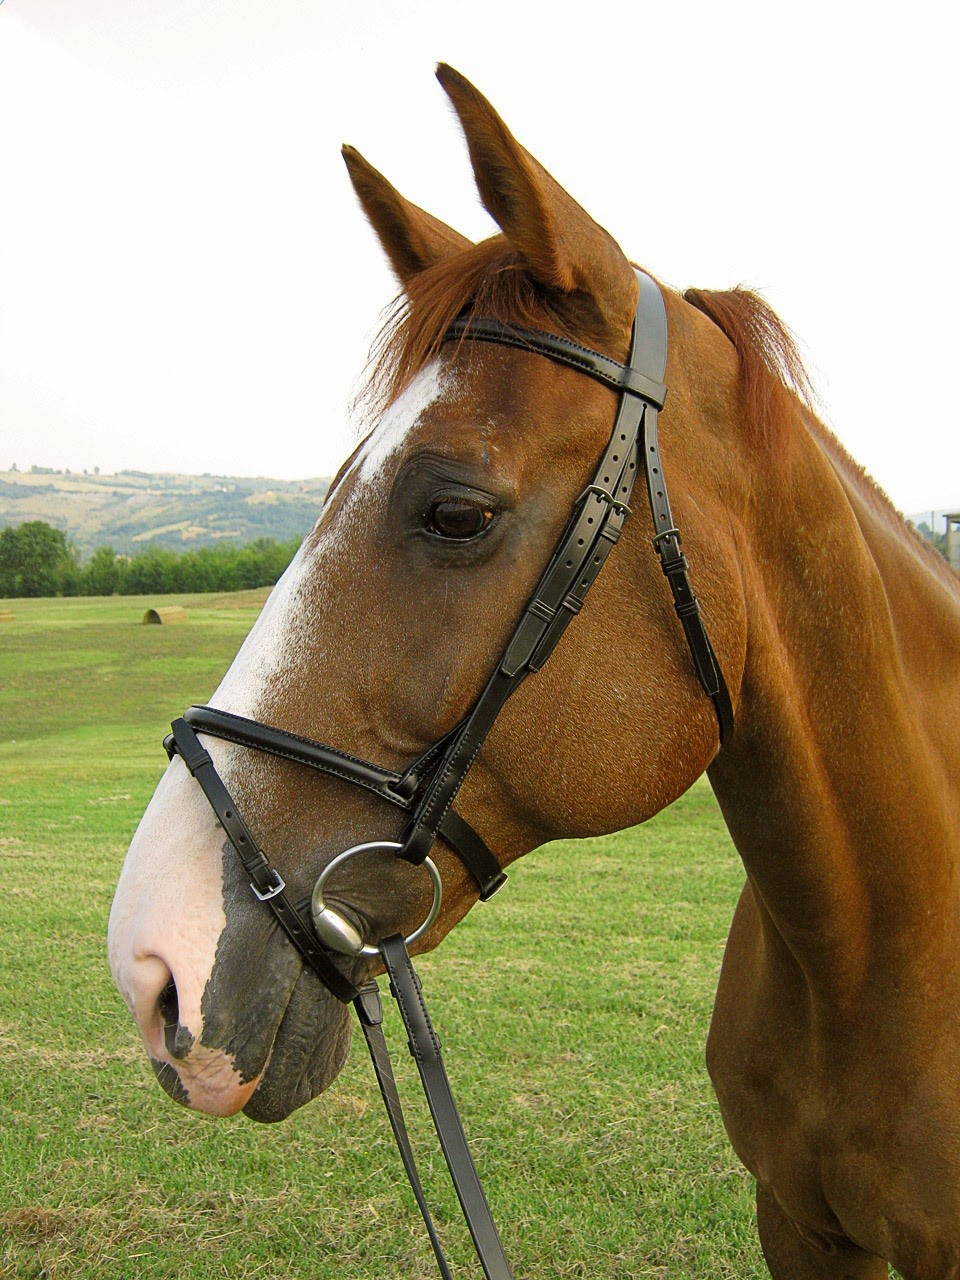 Nose Strap Horse Over The Horses Nose as a